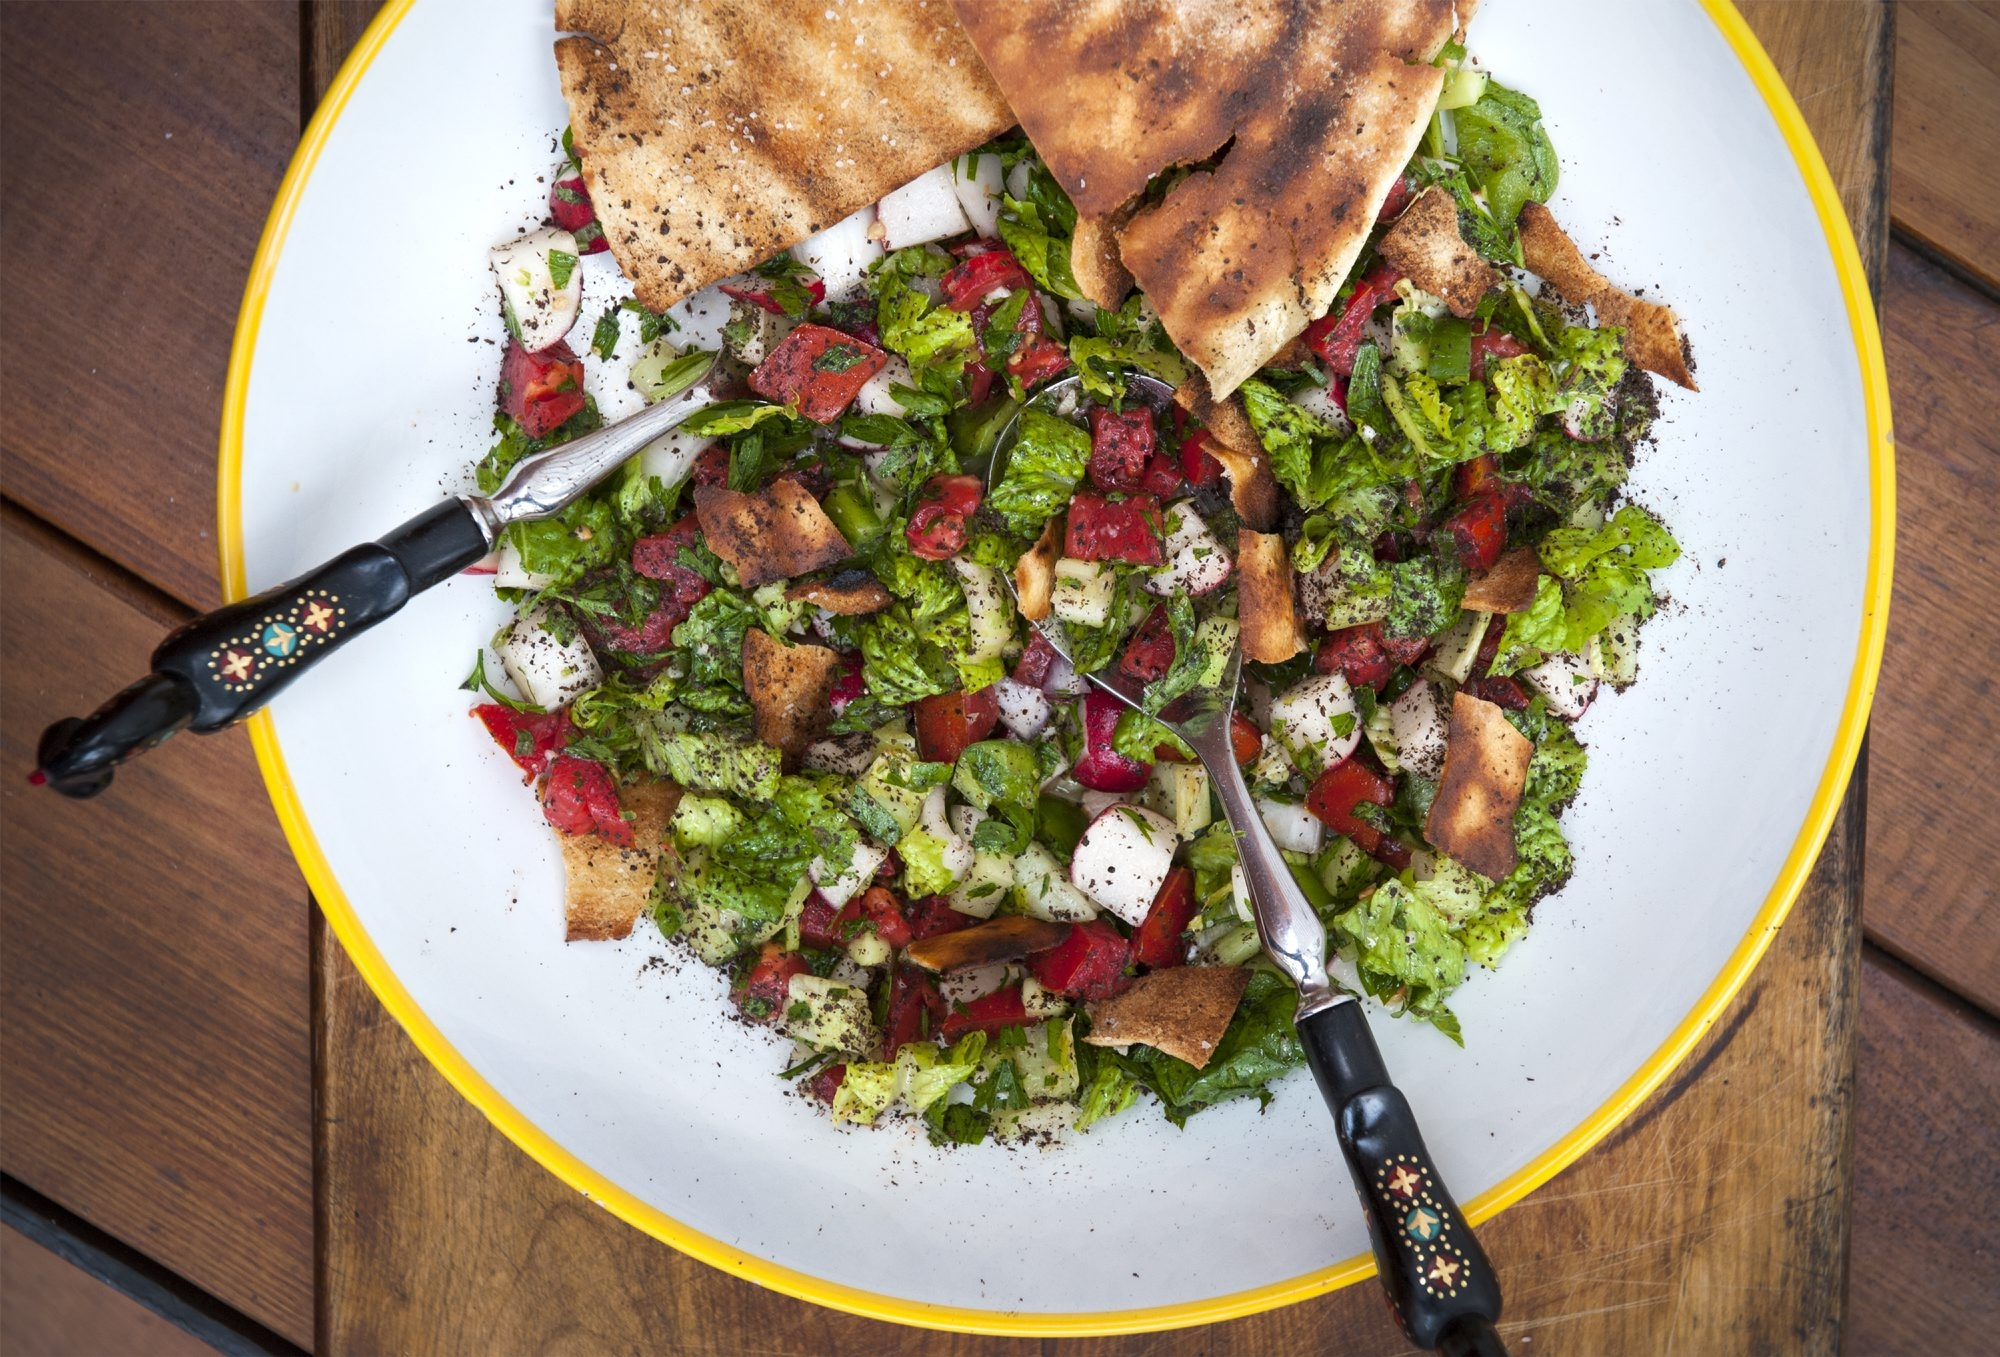 The crunch of the grilled pita gives this chunky and colorful fattoush its character.